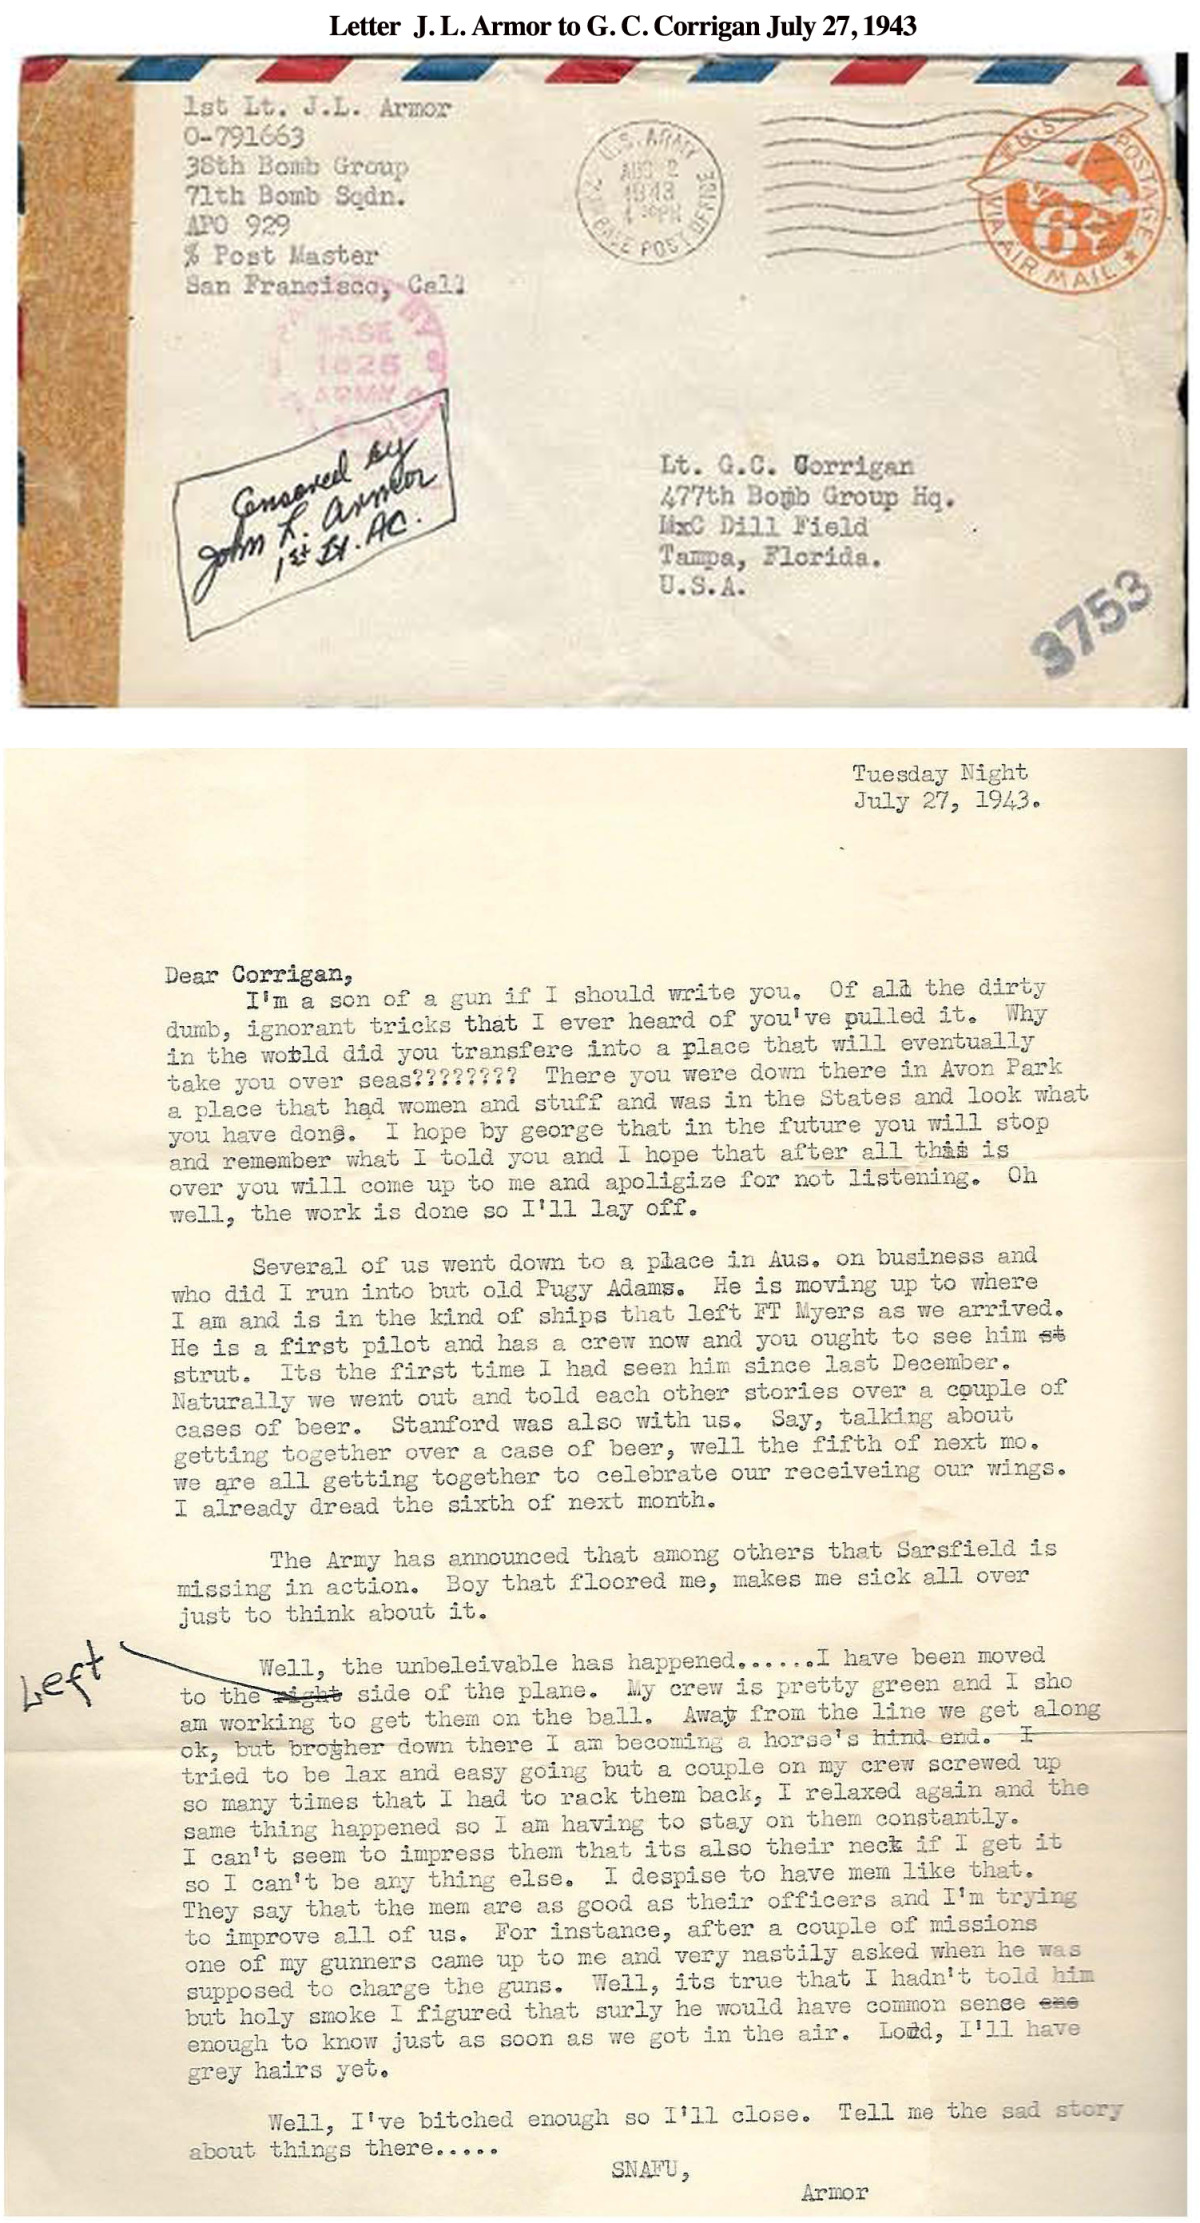 Letter Armor to Corrigan July 27, 1943